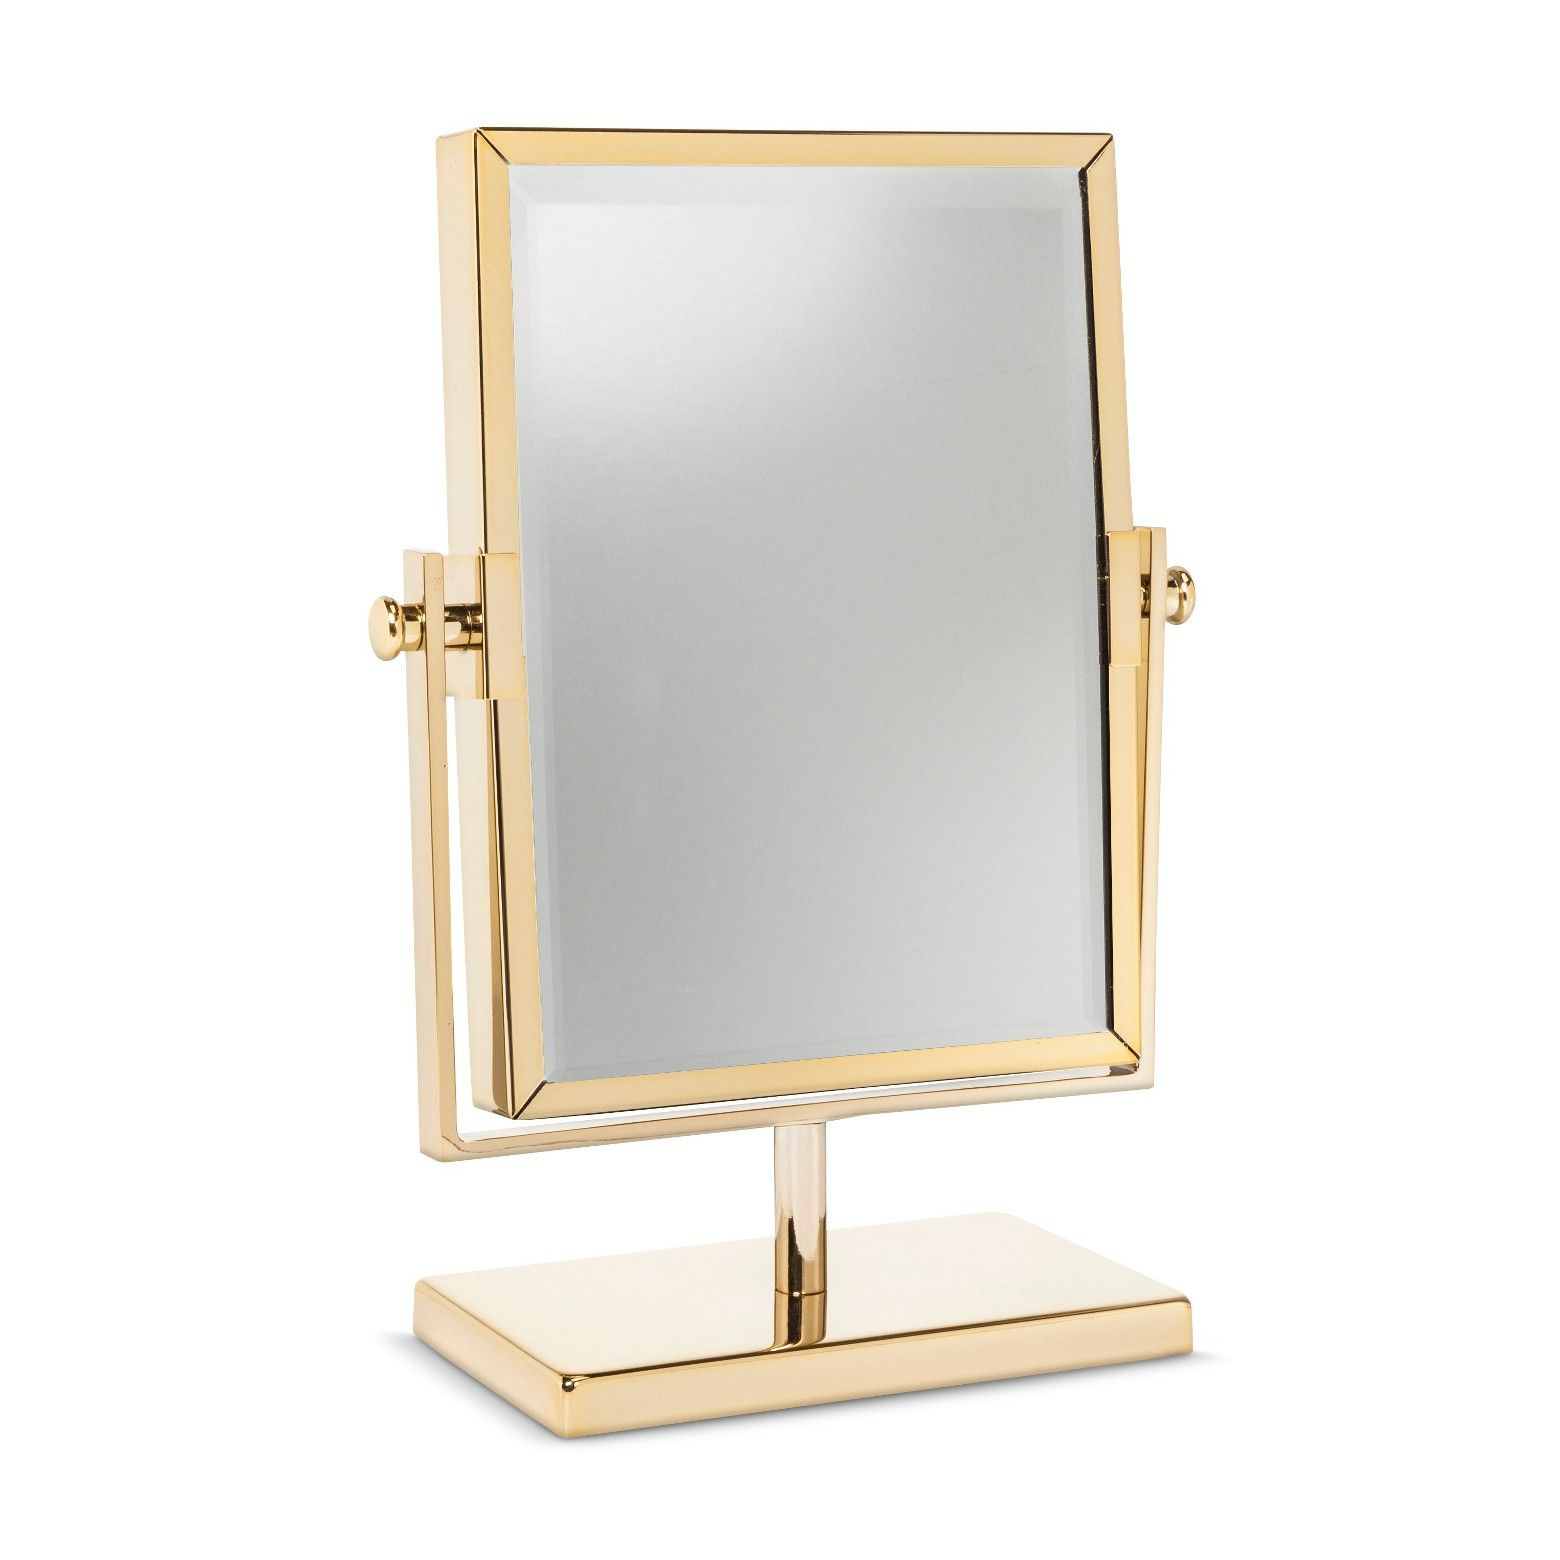 The West Emory Two Sided Gold Vanity Mirror Is A Definite Showstopper It Features A Gorgeous Golden Gold Vanity Mirror Gold Bathroom Accessories Vanity Mirror